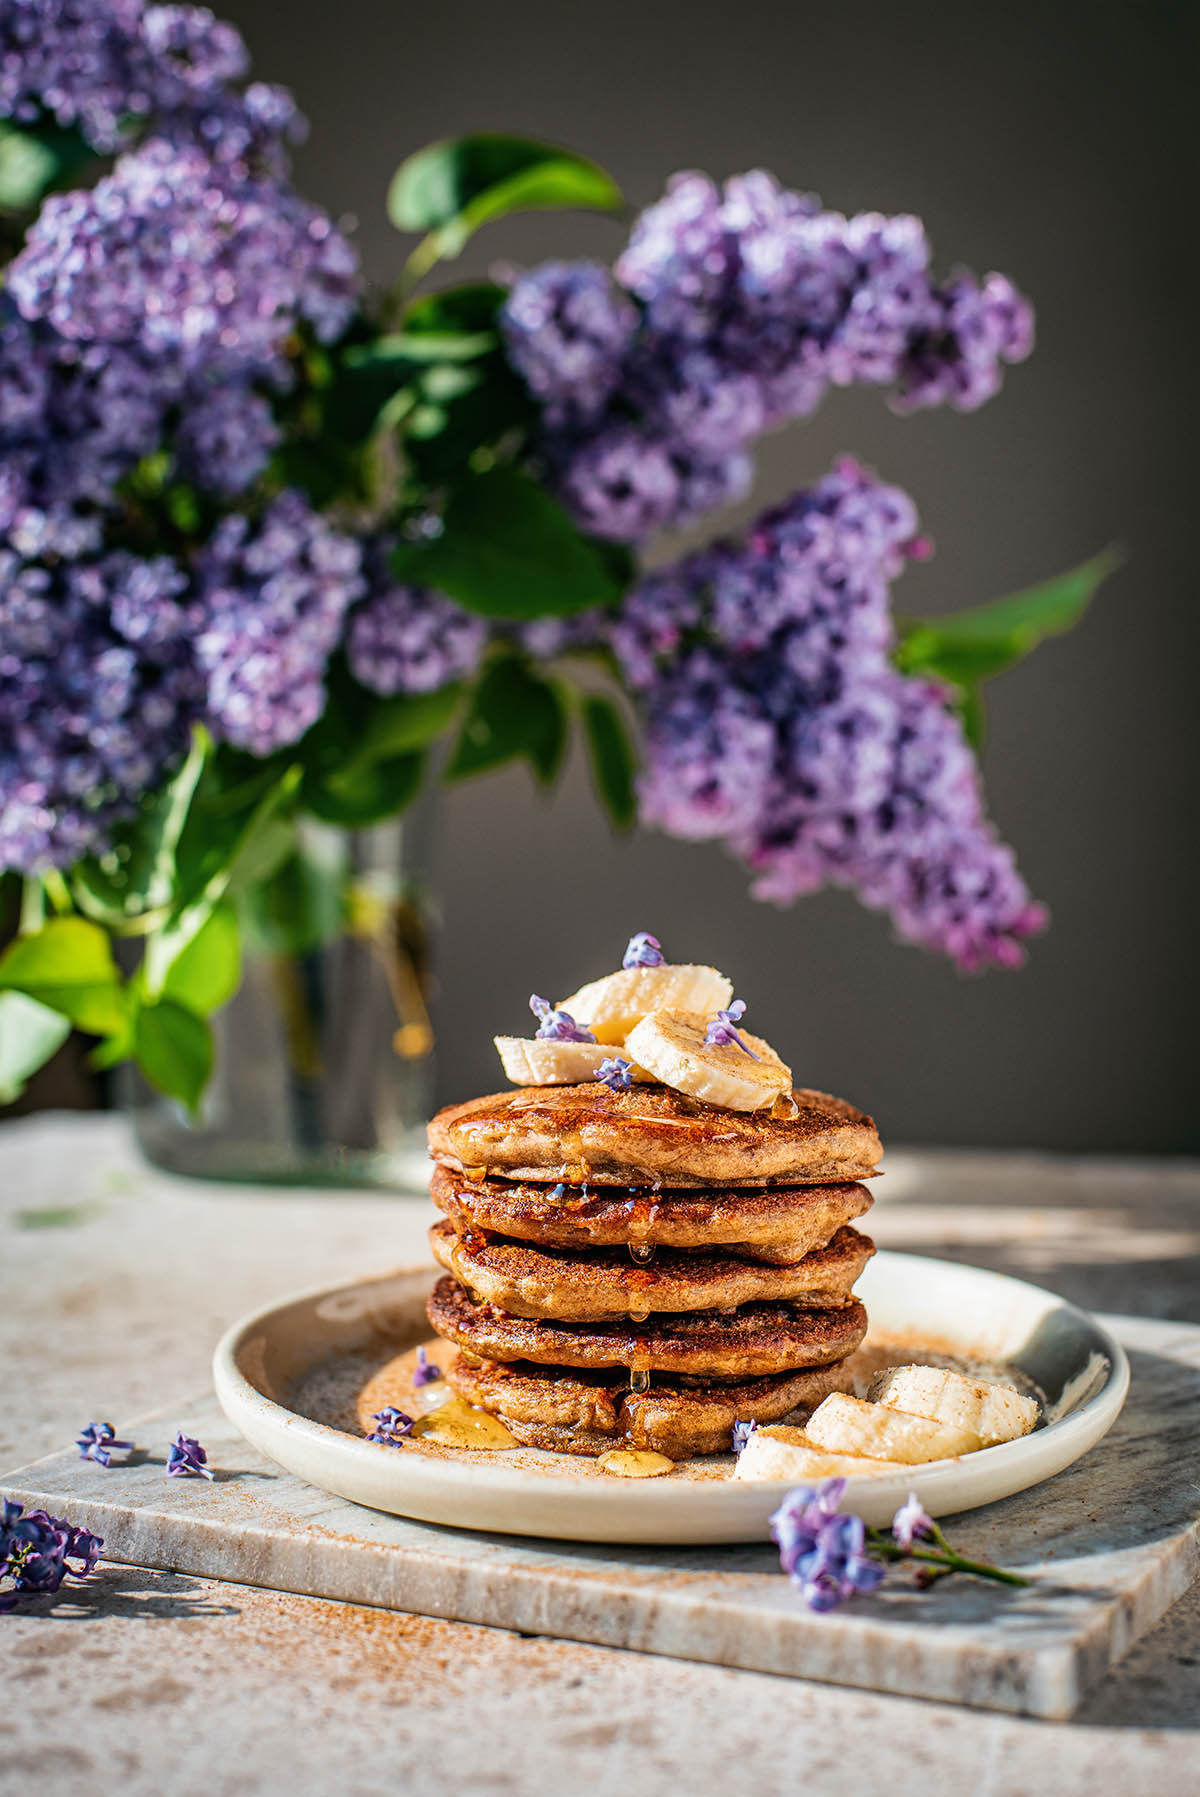 Stack of pancakes topped with bananas and lilac blossoms.